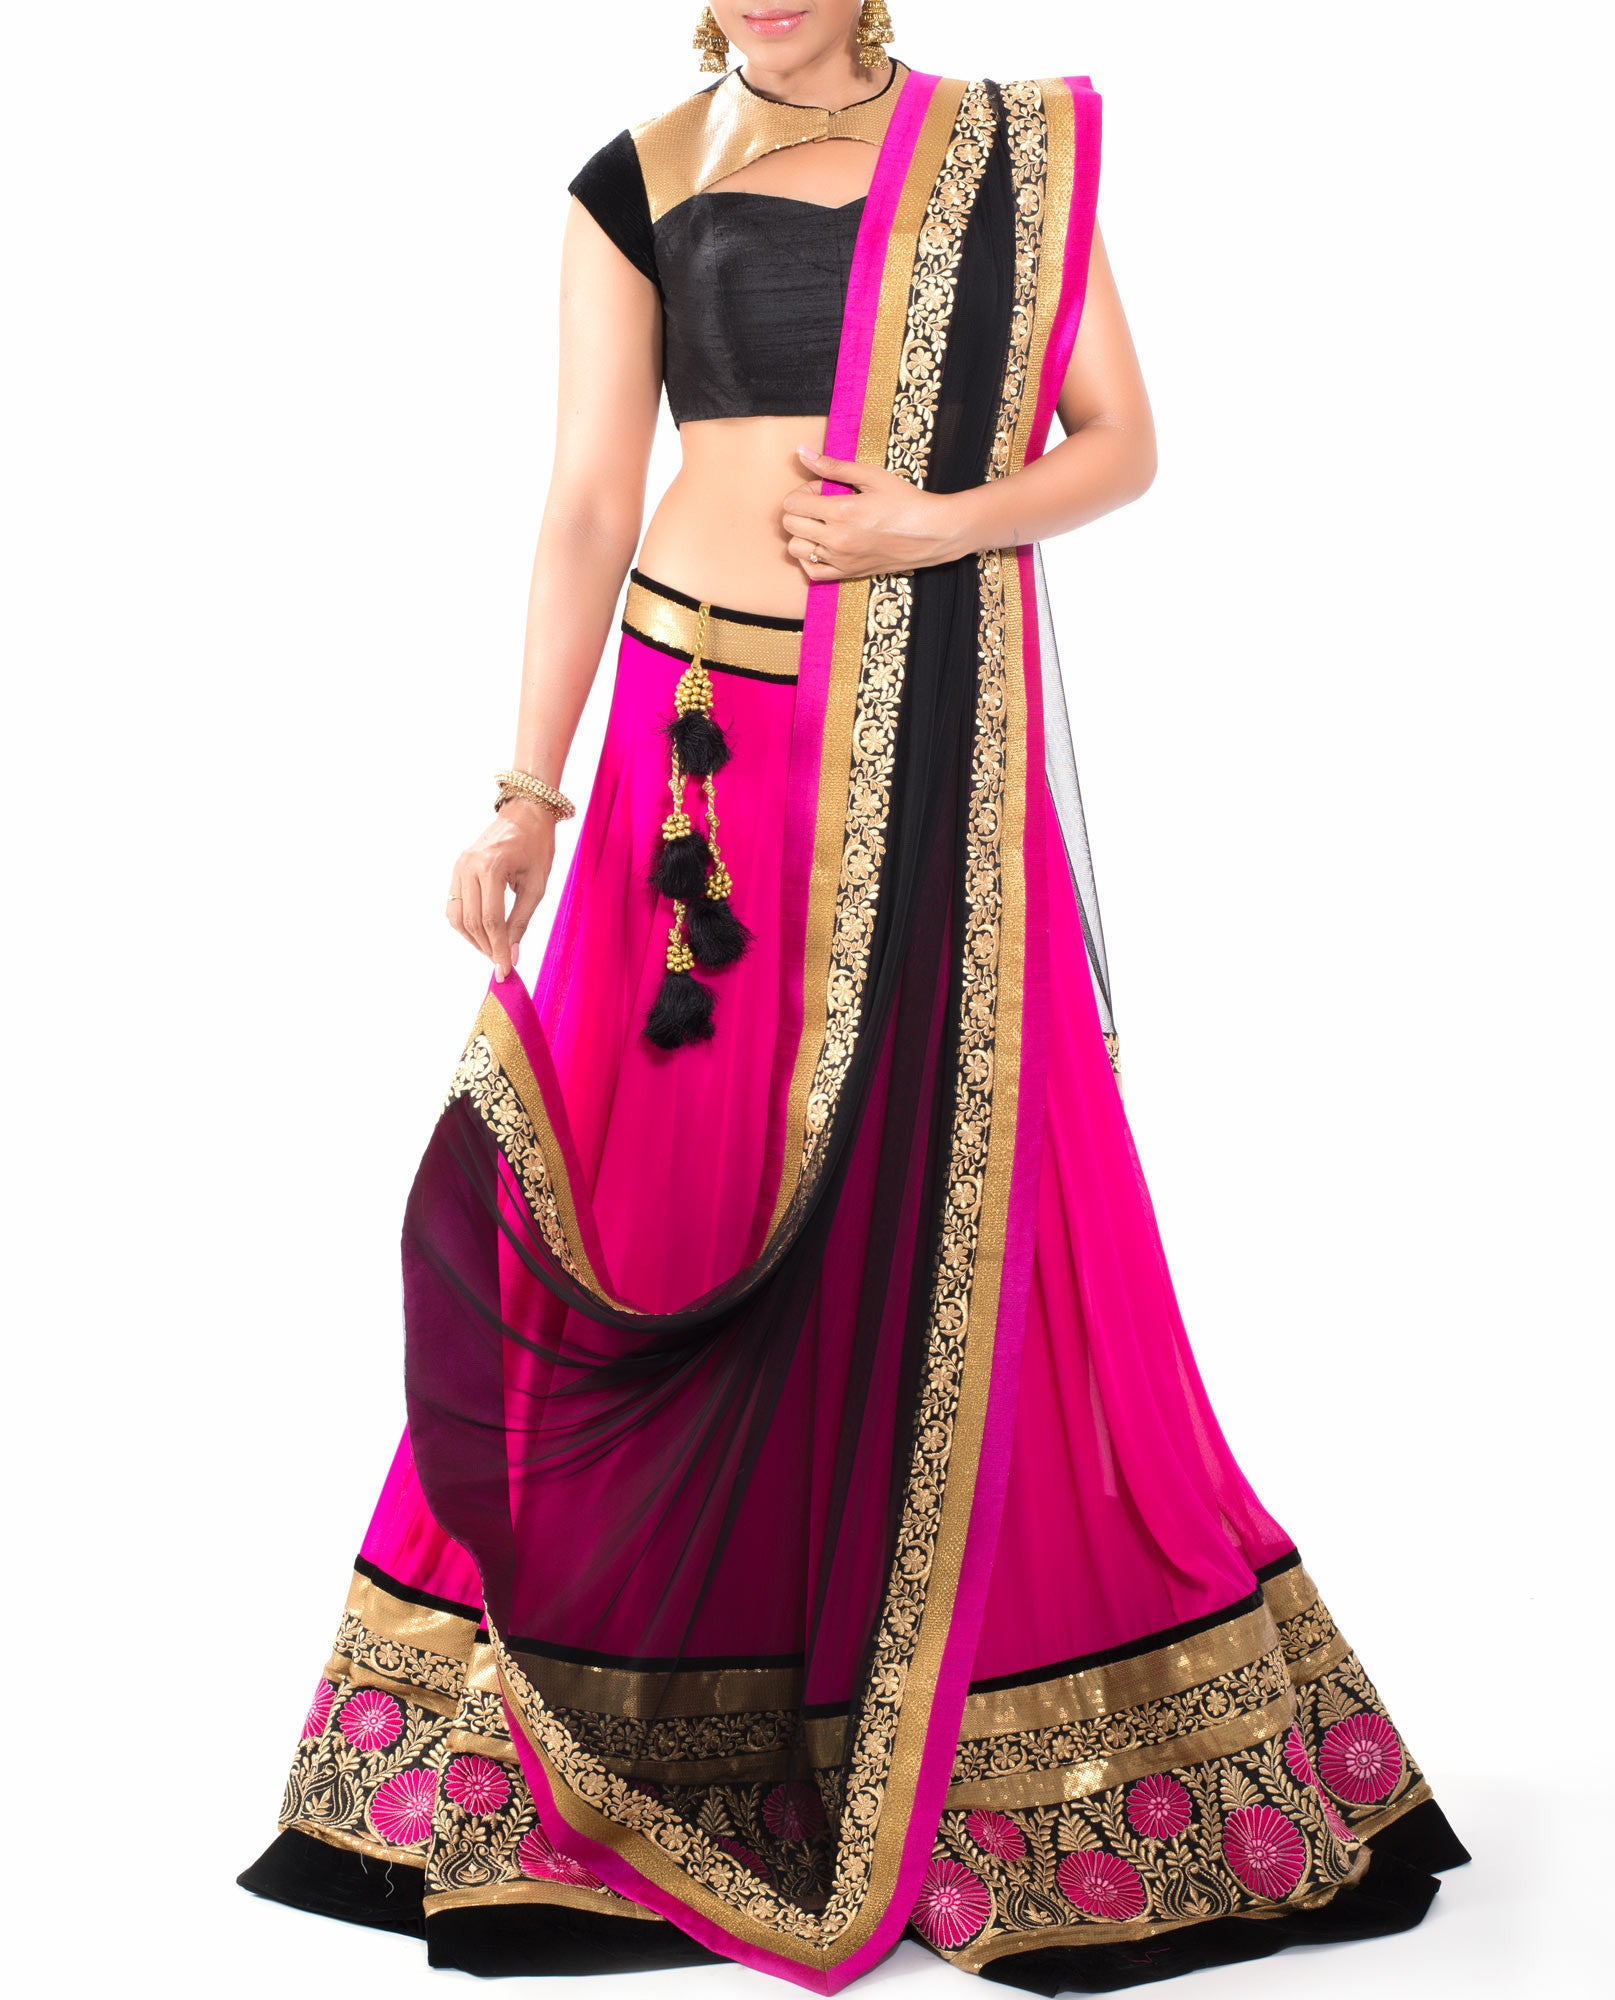 Lehenga Set - Rani Pink With Black Border Lehenga